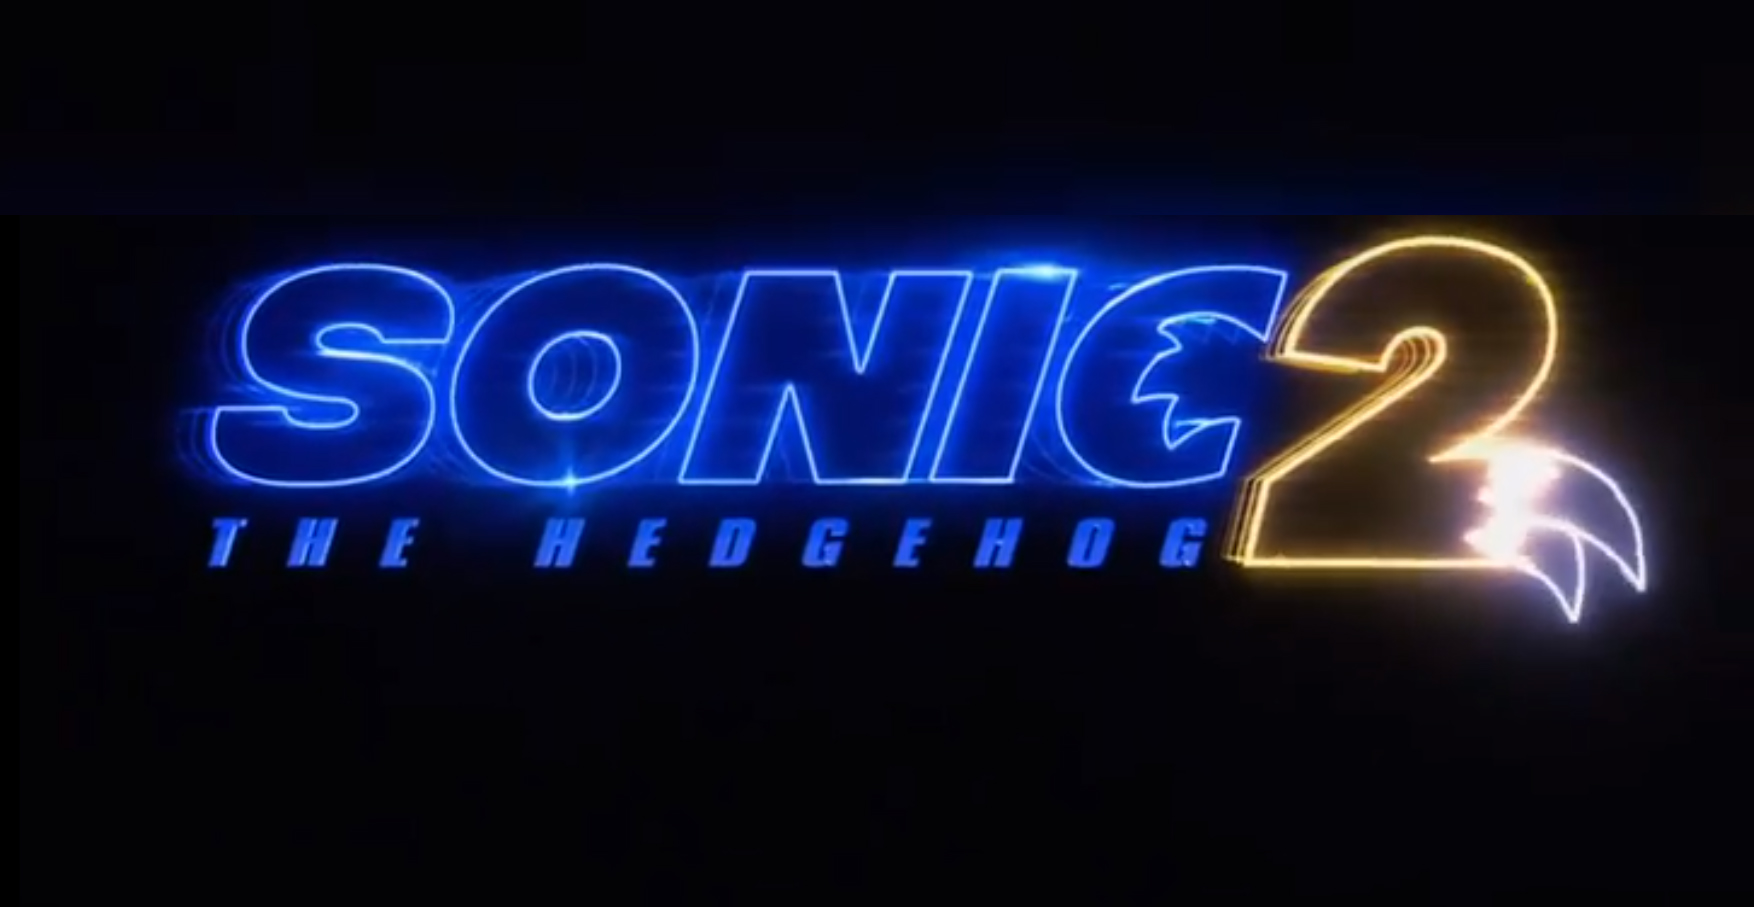 Sonic the Hedgehog 20 movie gets April 20, 2002020 release date ...